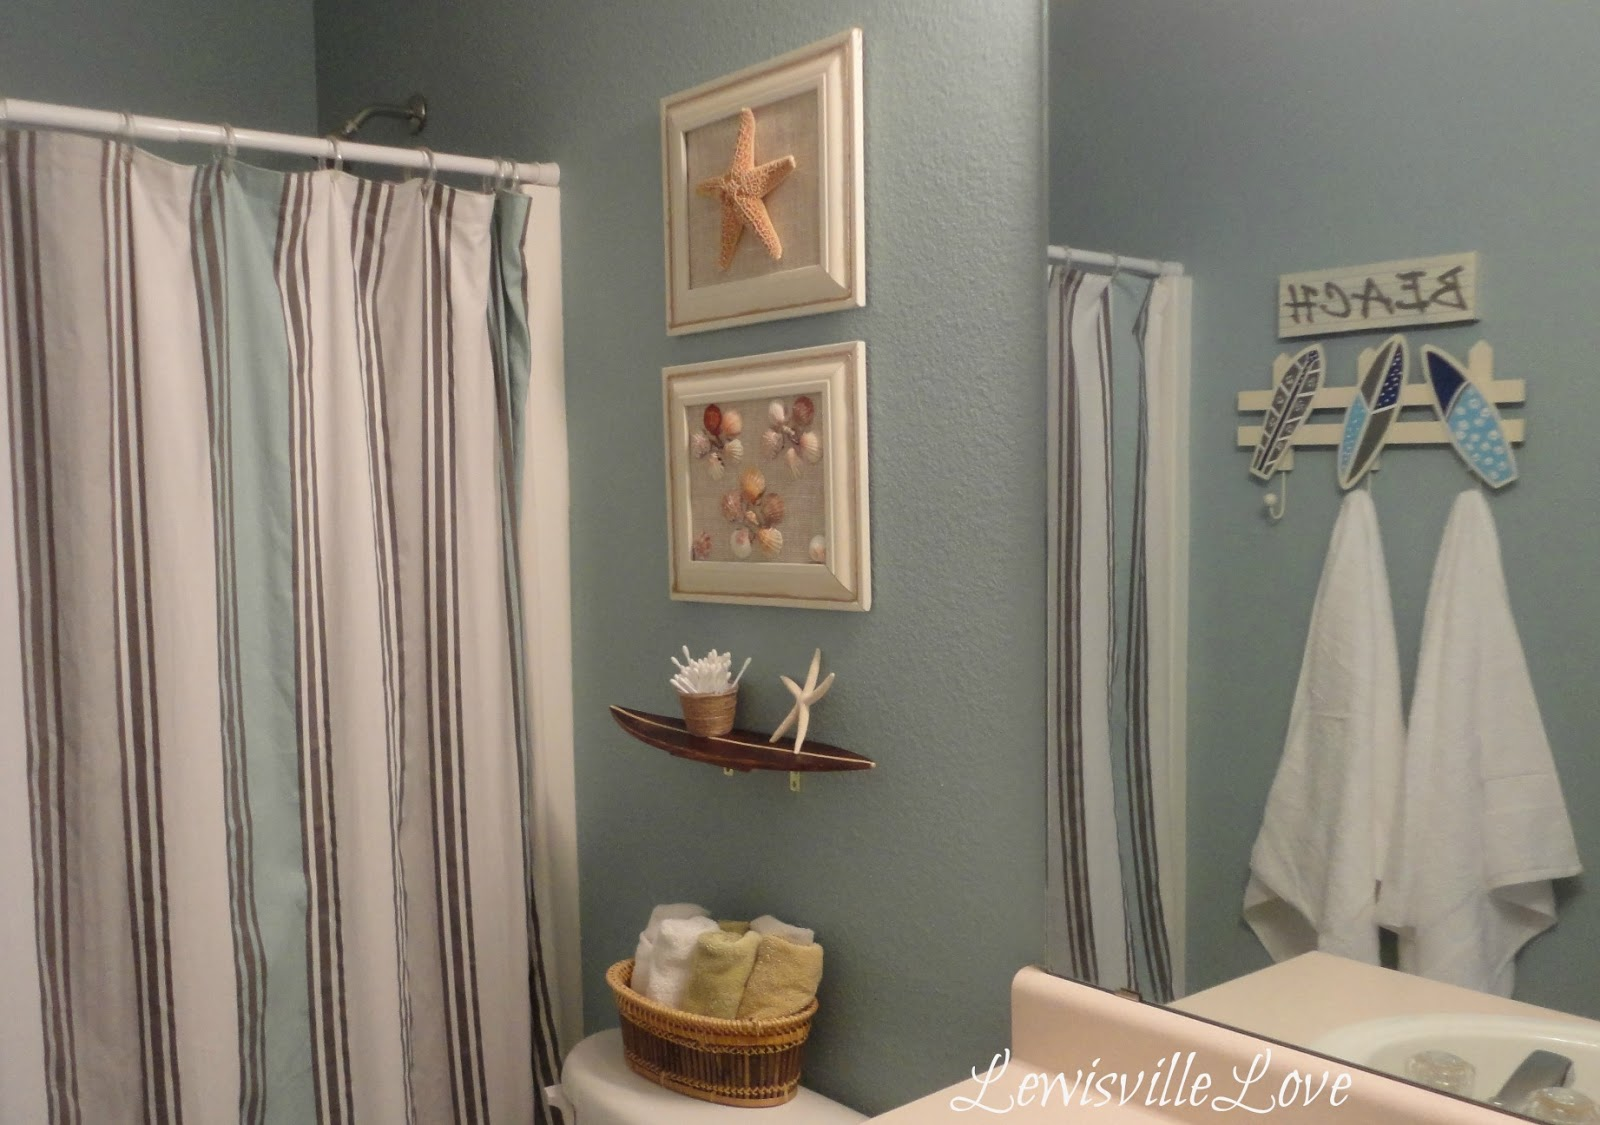 lewisville love beach theme bathroom reveal ForBeach Themed Bathroom Decor